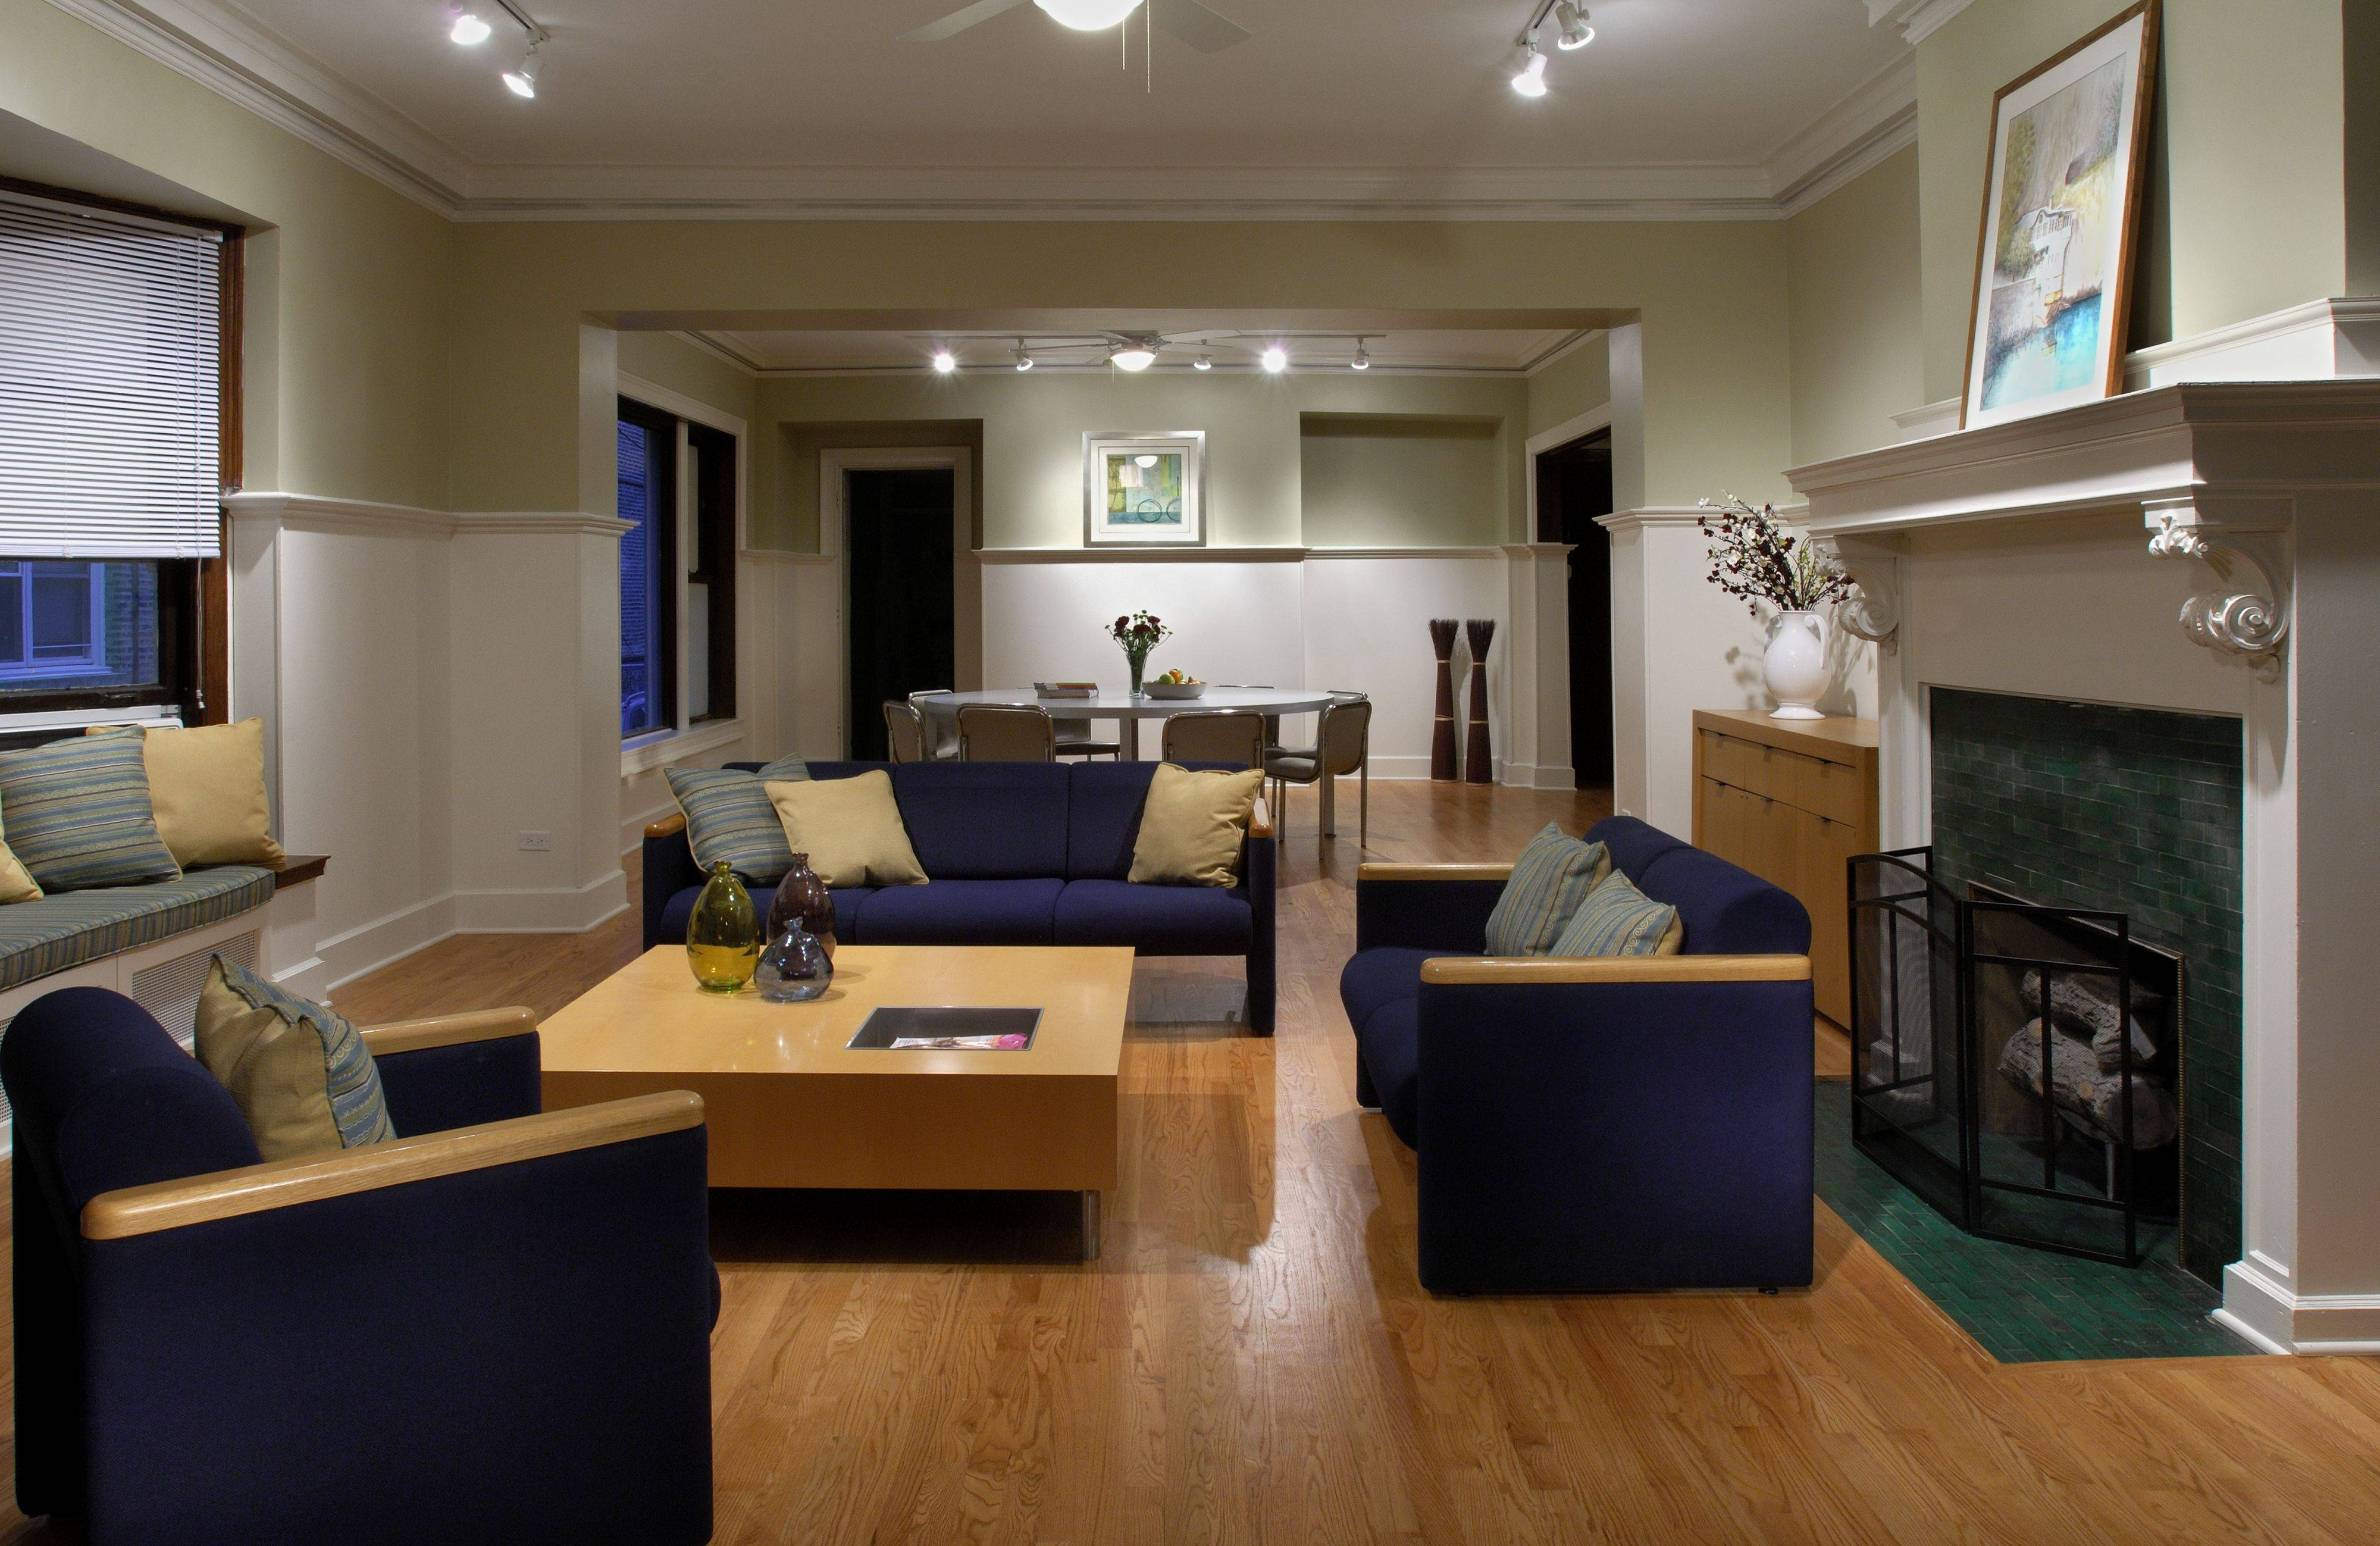 Designers Working With Design For Dignity Turned An Old Chicago Funeral  Parlor Into This Space For